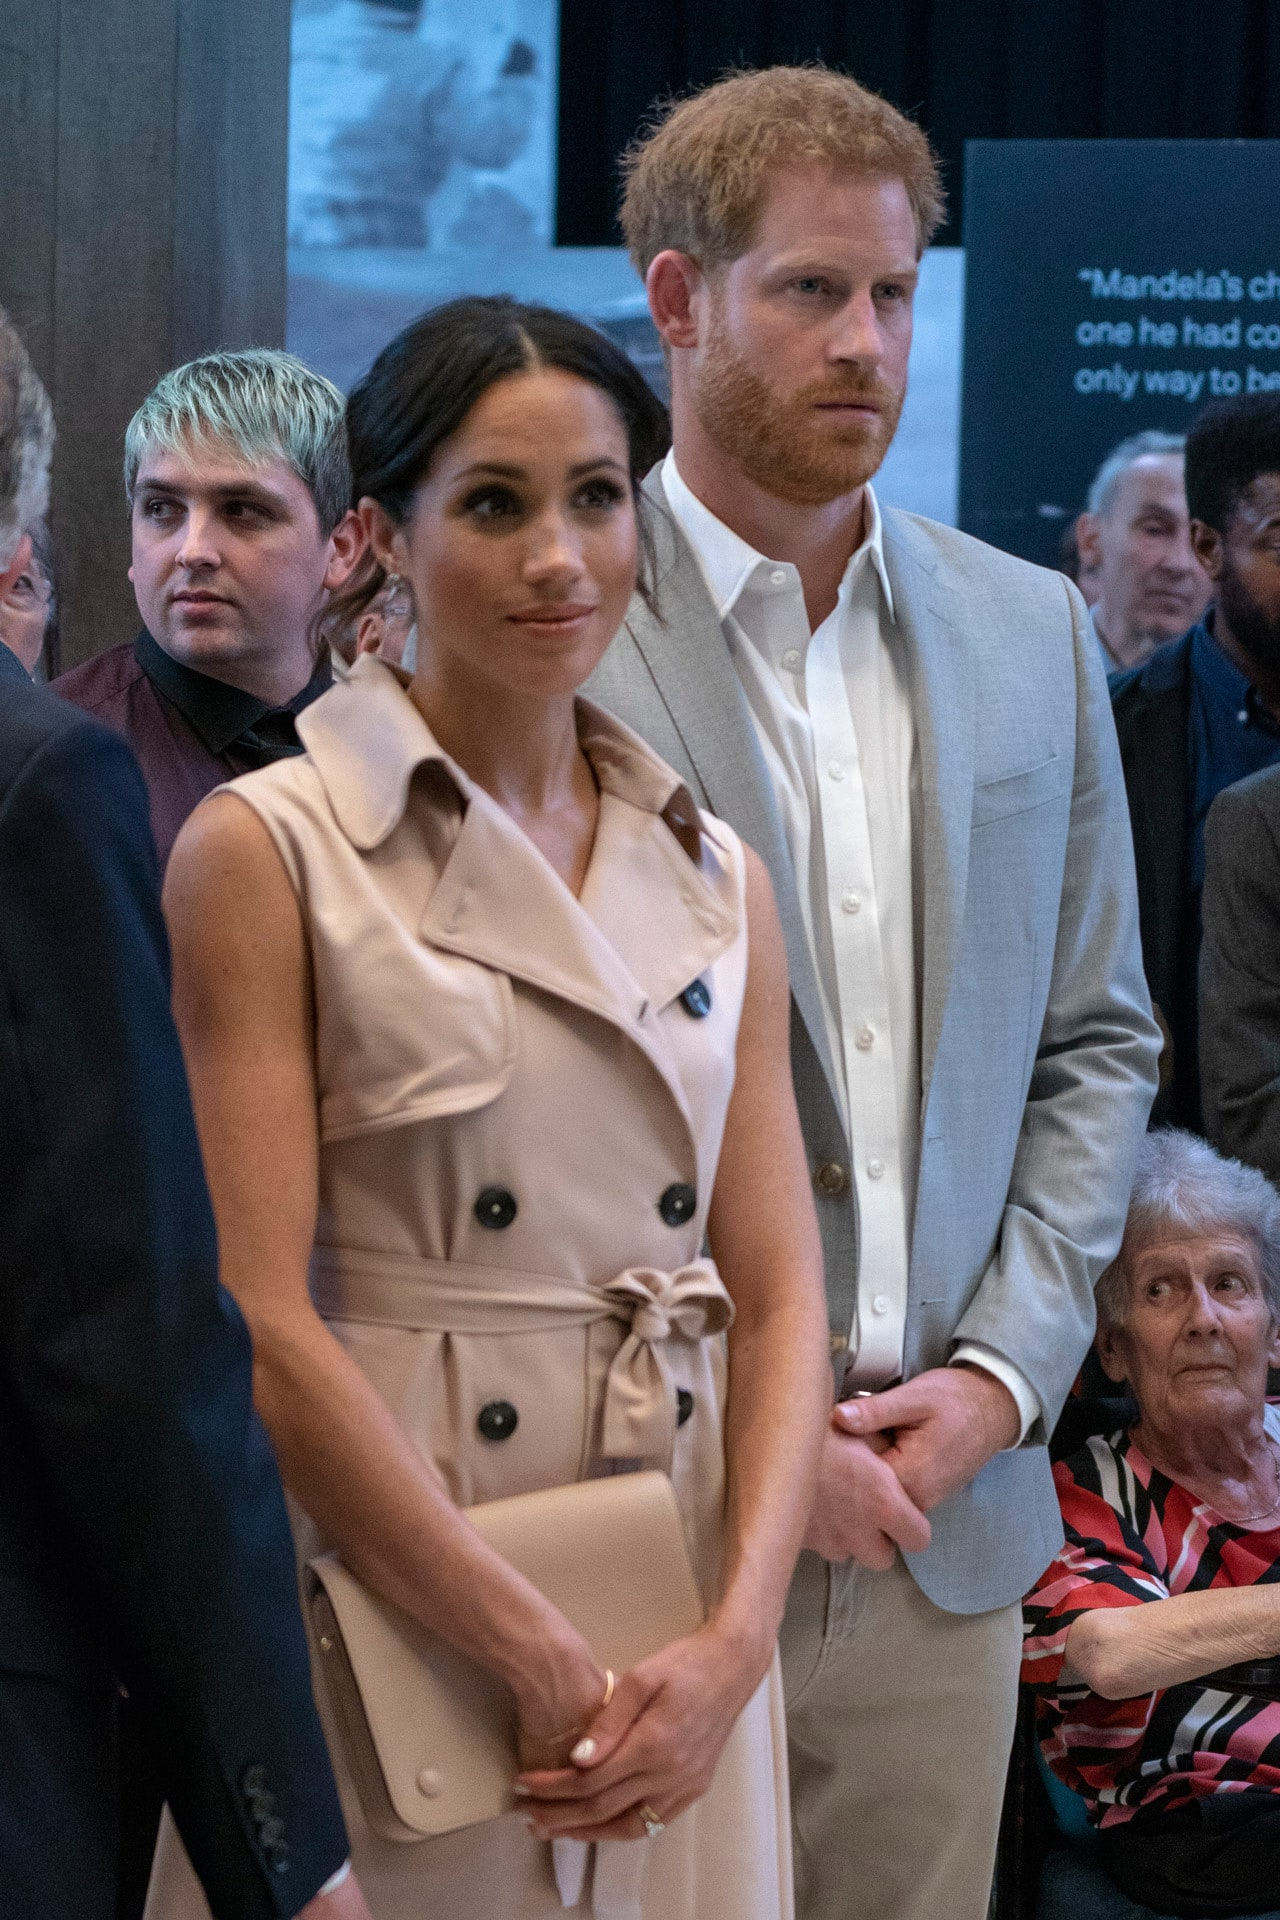 Watch Did Meghan Markle's New Pink Manicure Break RoyalTradition video